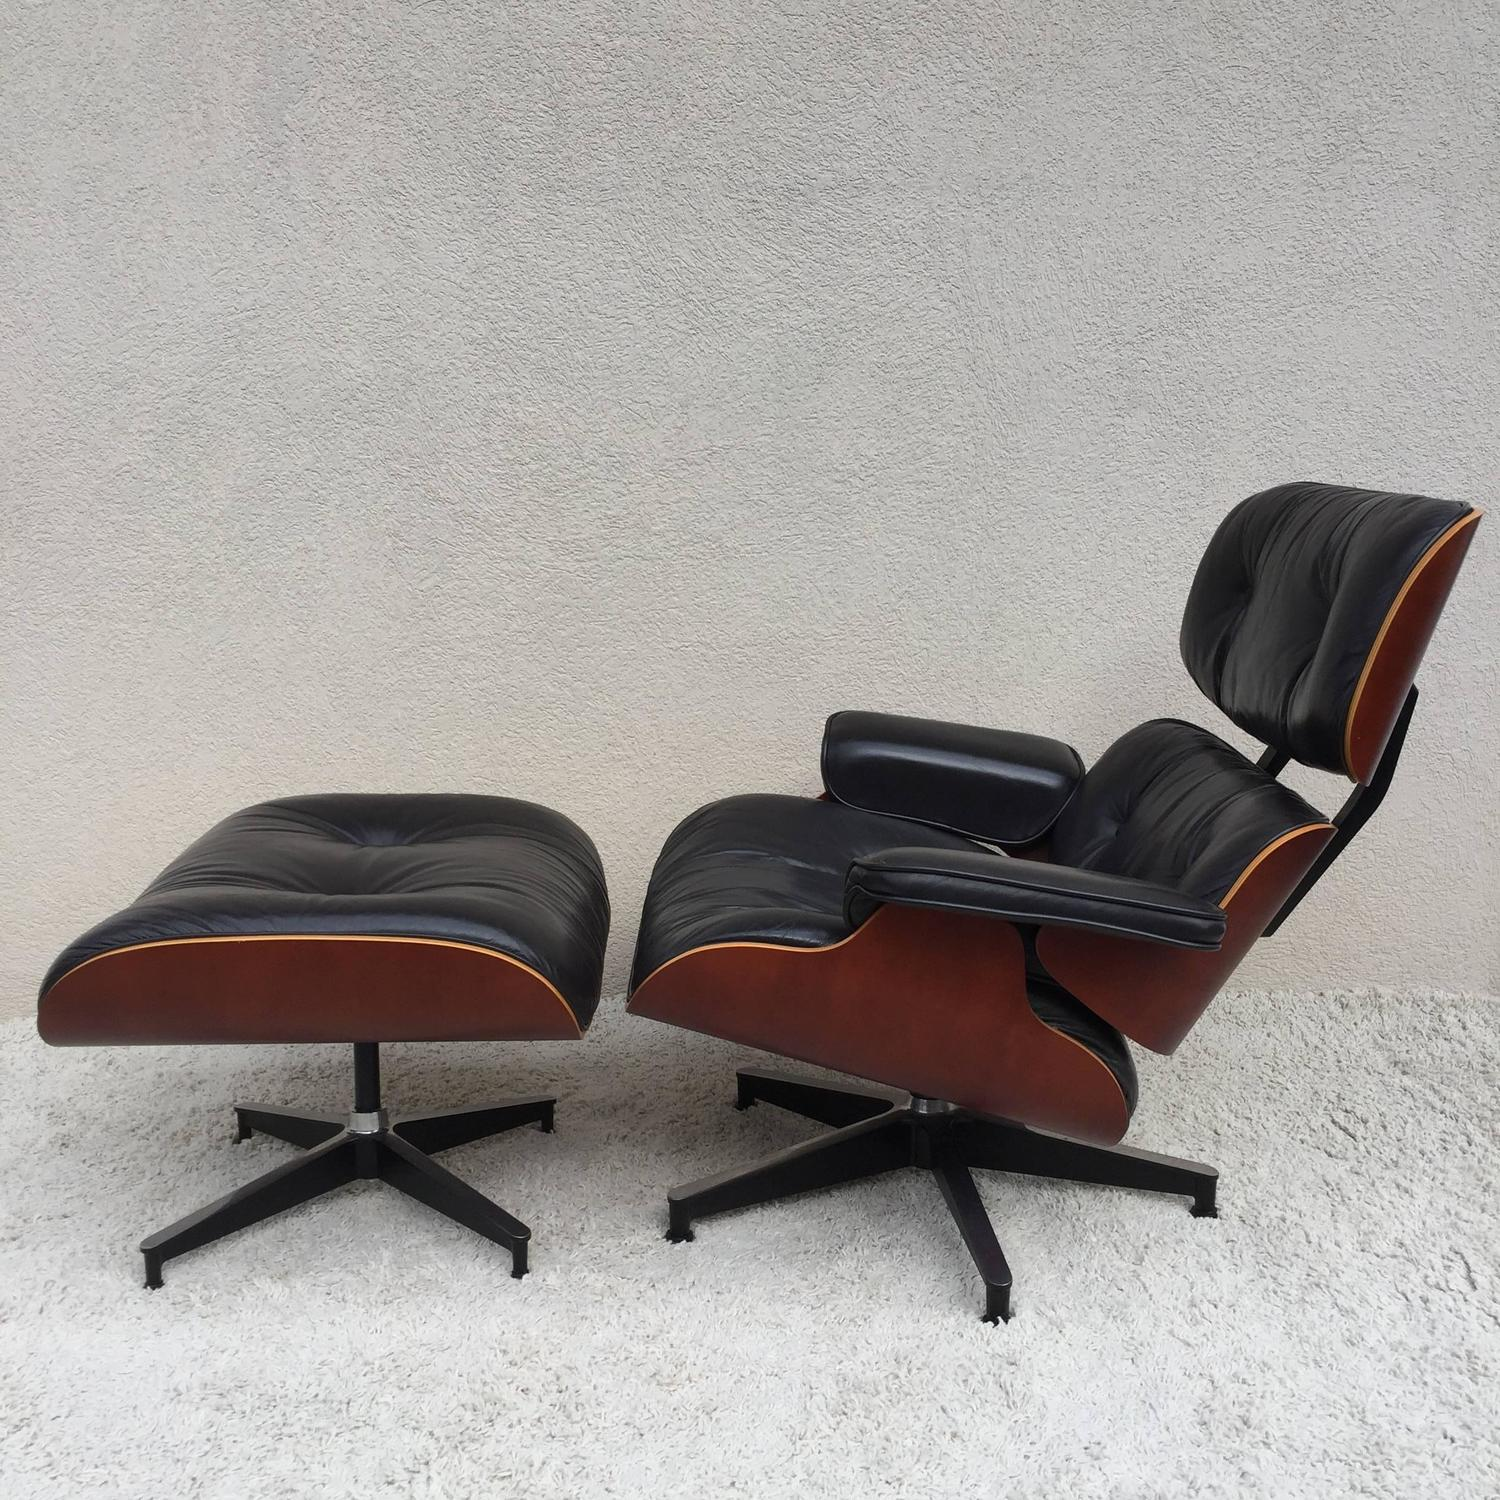 Charles eames lounge chair and ottoman for herman miller - Herman miller eames lounge chair and ottoman ...